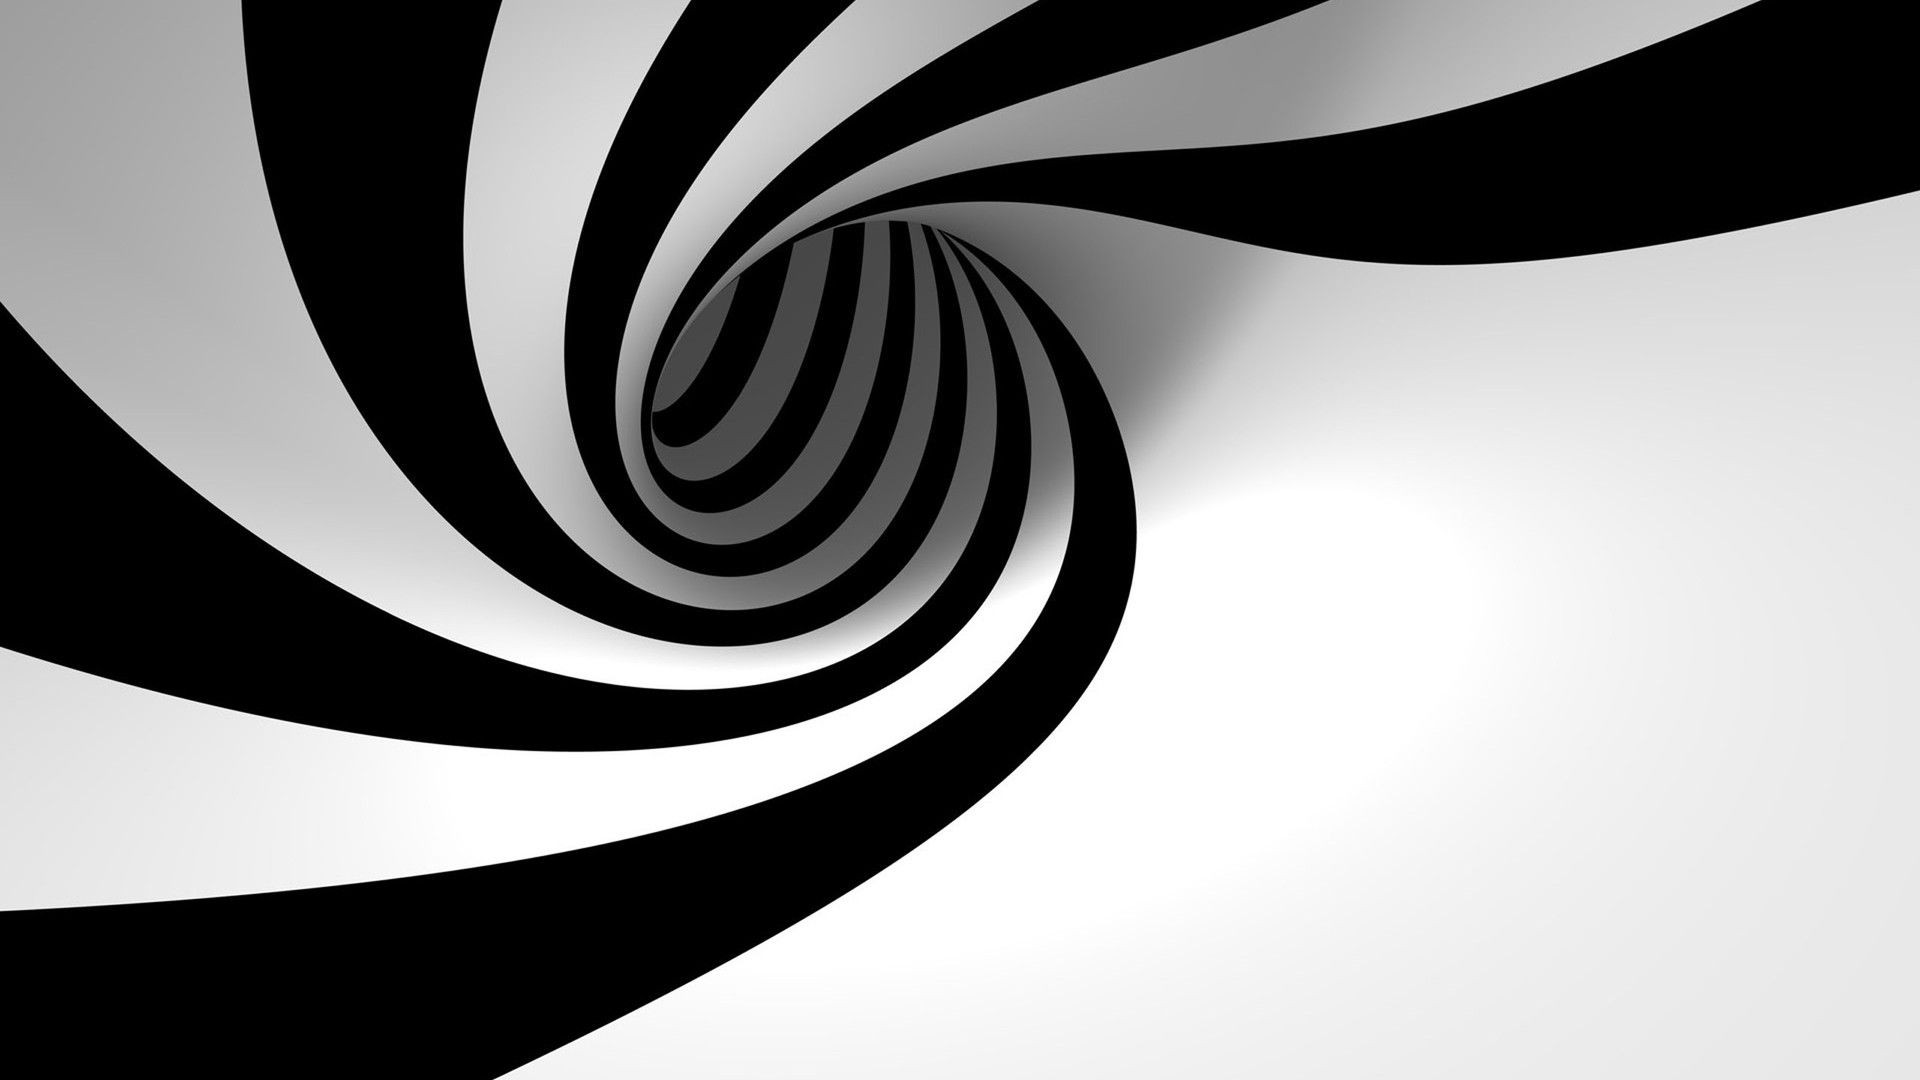 White Abstract Background ① Download Free Stunning Backgrounds For Desktop And Mobile Devices